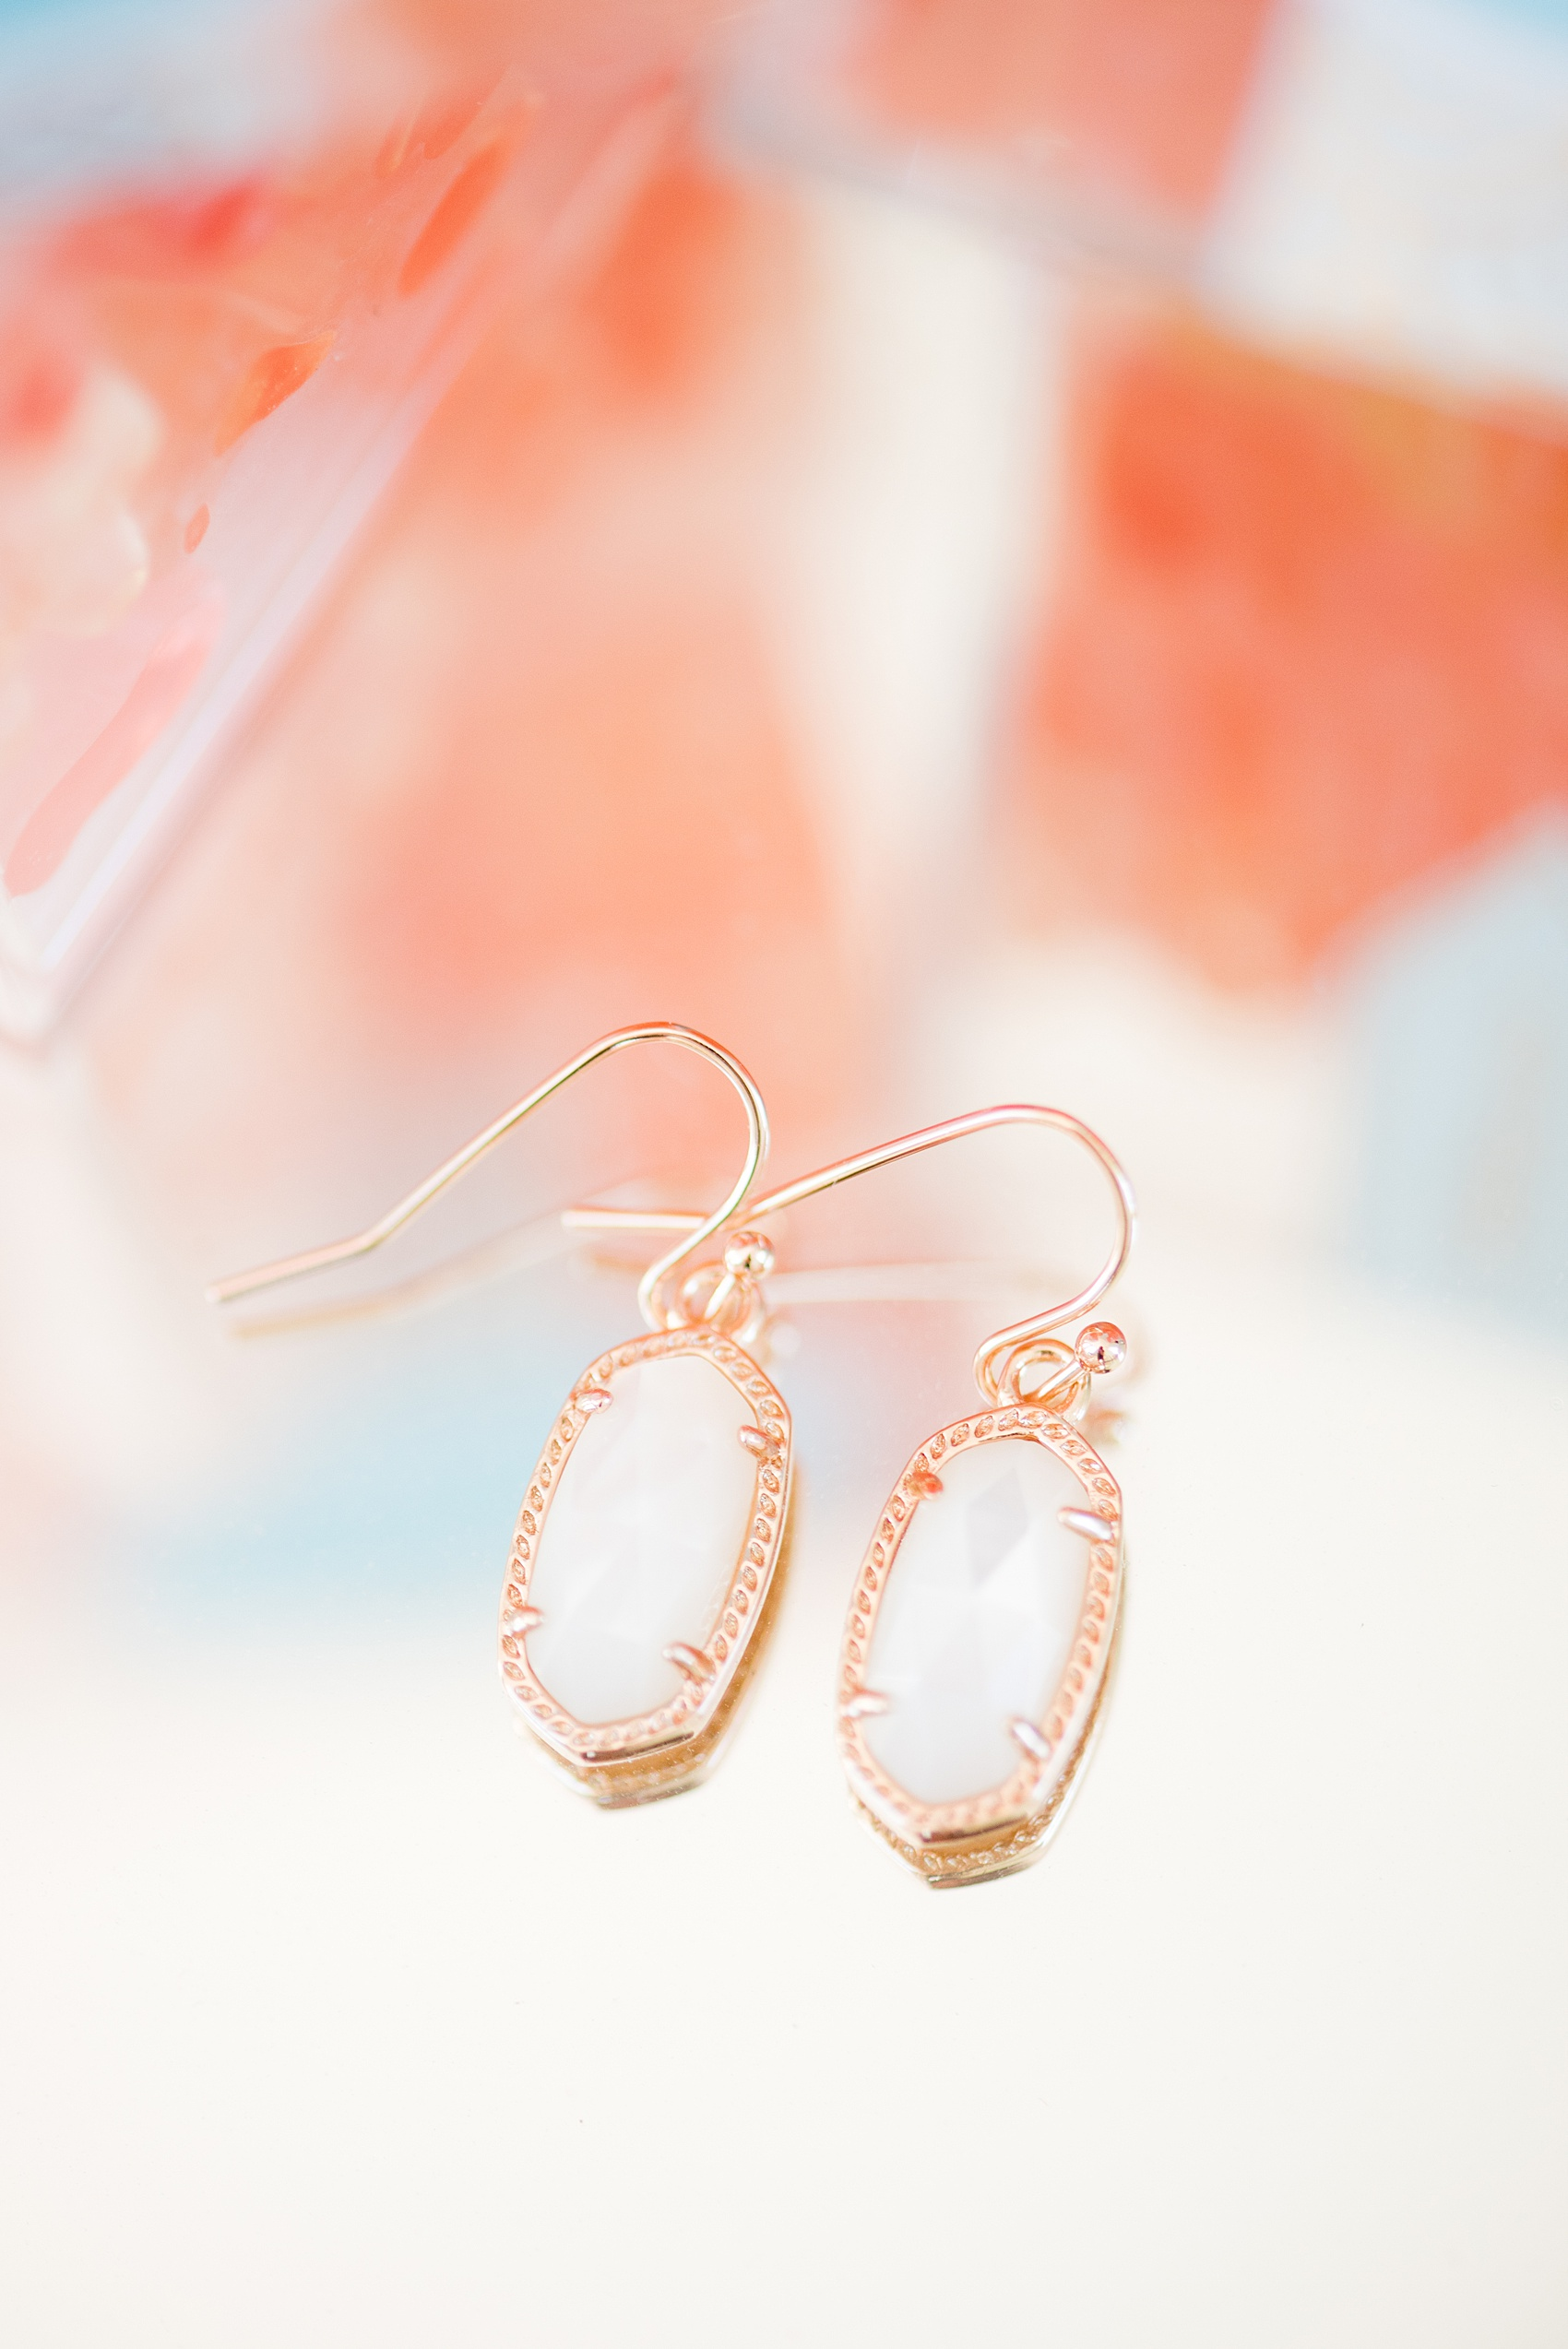 Mikkel Paige Photography pictures from a wedding at Merrimon-Wynne House in Raleigh, NC. Detail photo of the Kendra Scott earrings the bride gifted her bridesmaids.